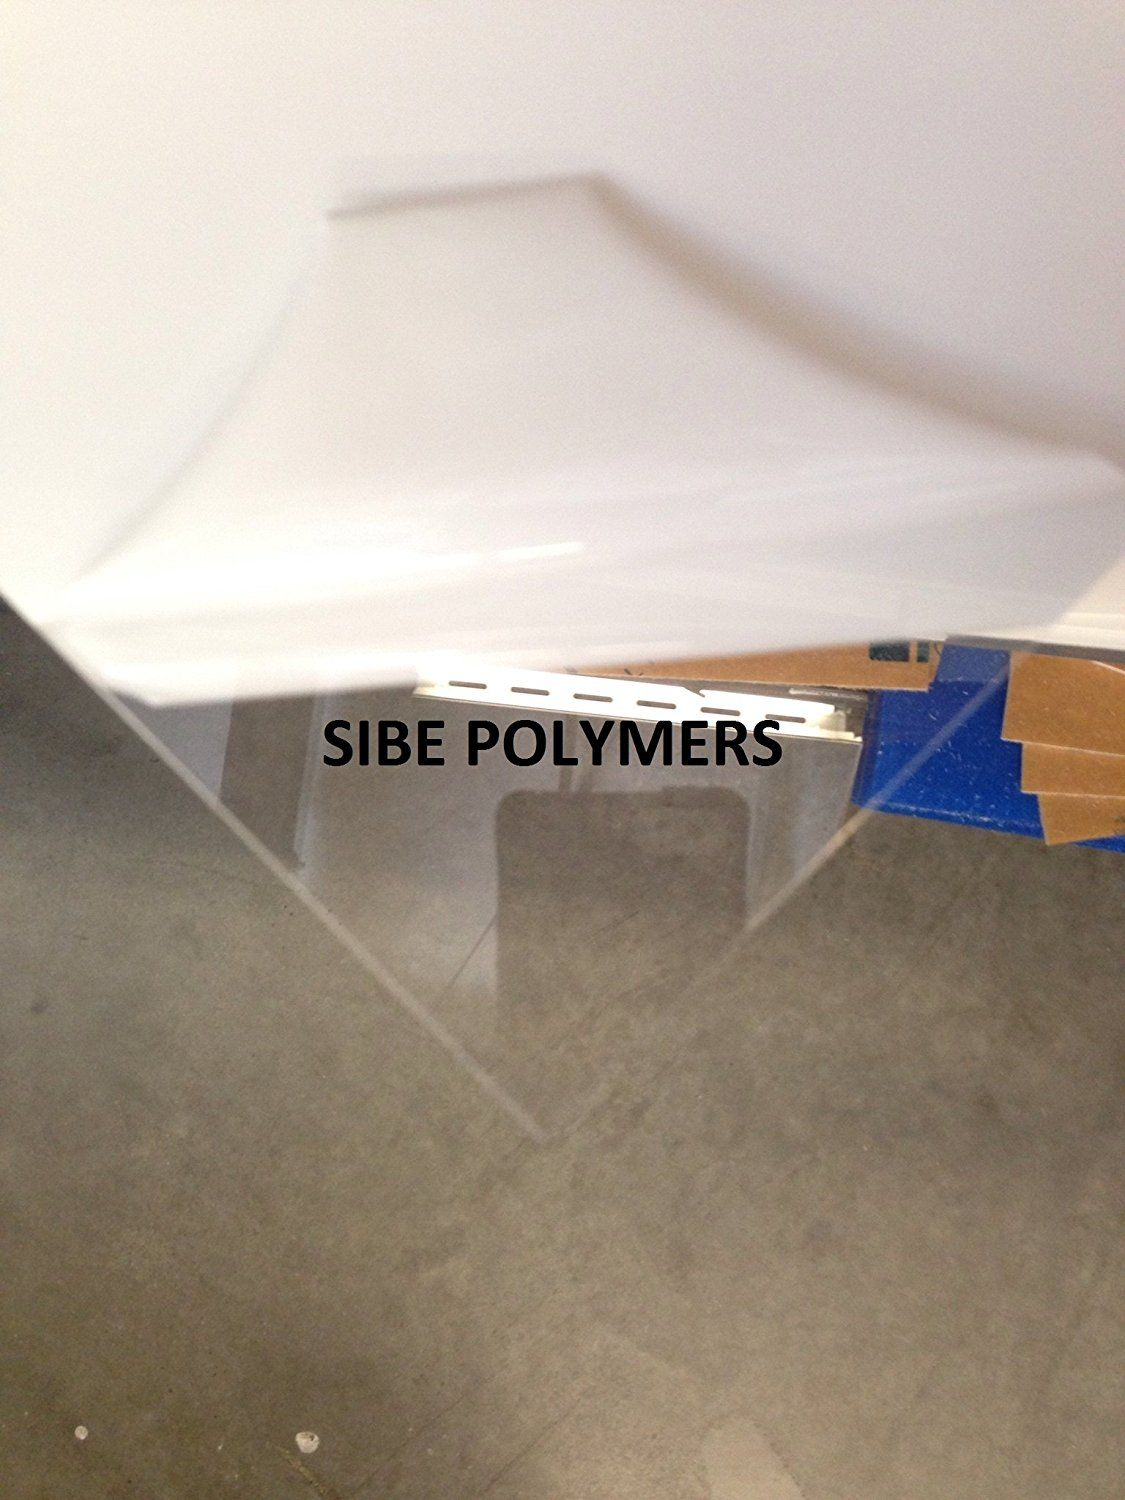 Sibe R Plastic Supply Clear Acrylic Plexiglass 24 X48 1 16 0 060 Plastic Sheets Acrylic Plastic Sheets Clear Acrylic